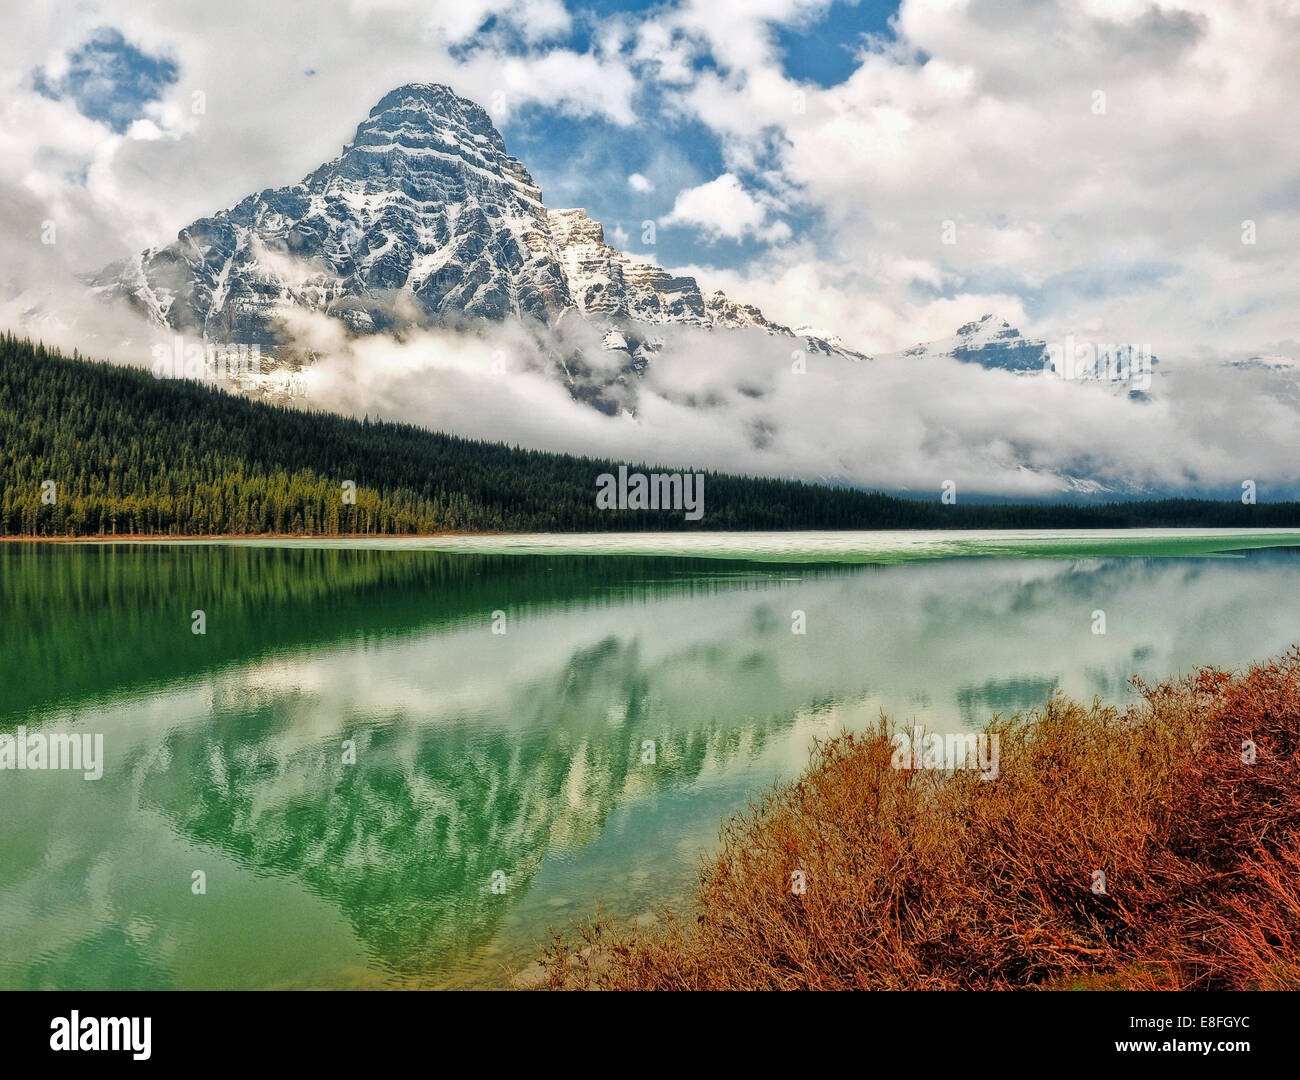 Mount Chephren reflected in Waterfowl Lake, Banff National Park, Alberta, Canada - Stock Image